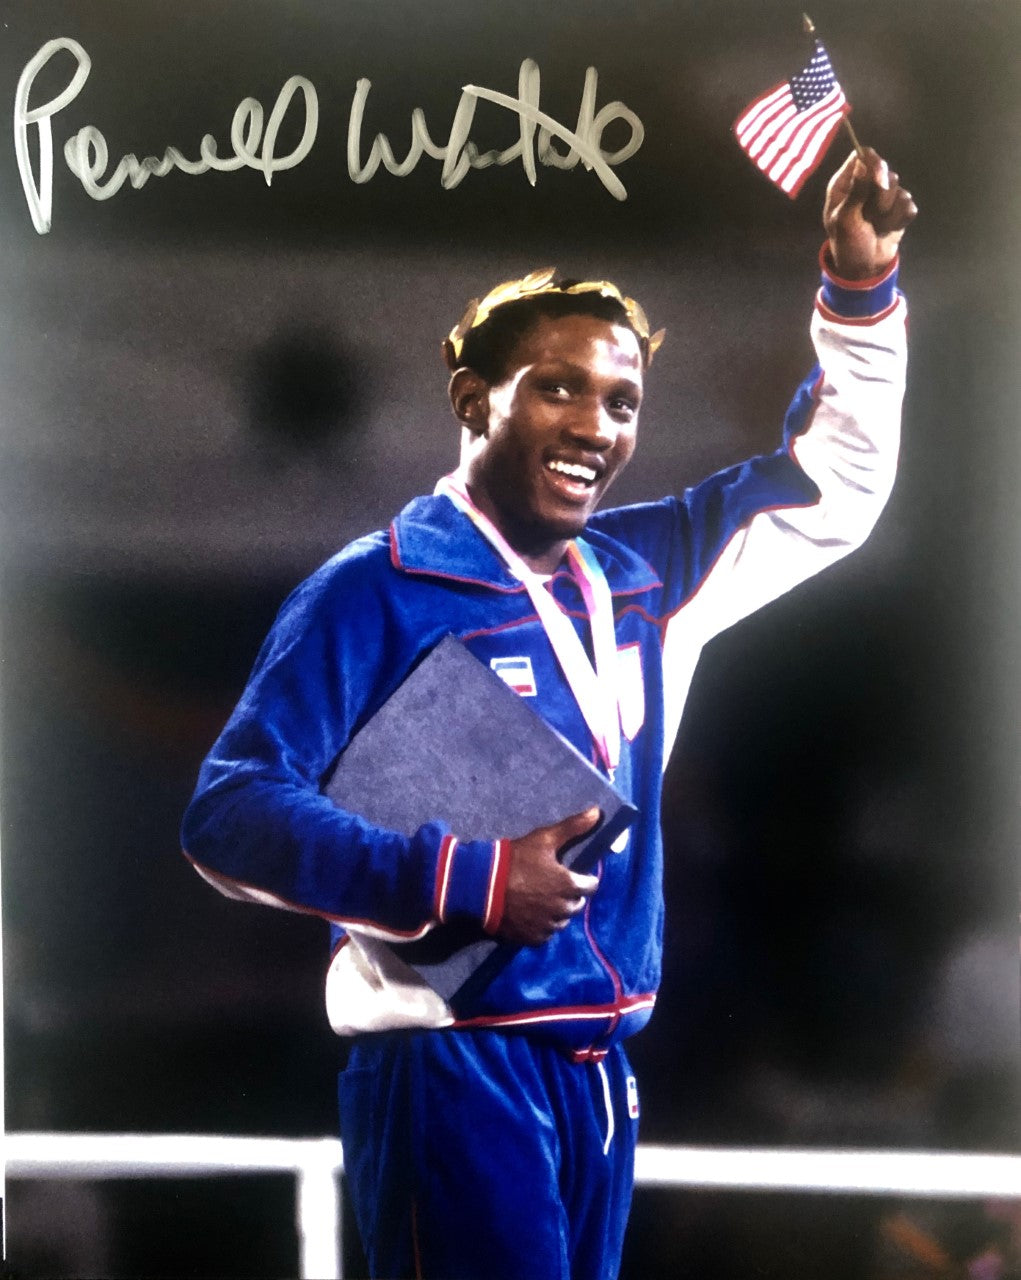 Pernell Whitaker Signed 8x10 Photo of the Gold medalist in the 84 Olympics